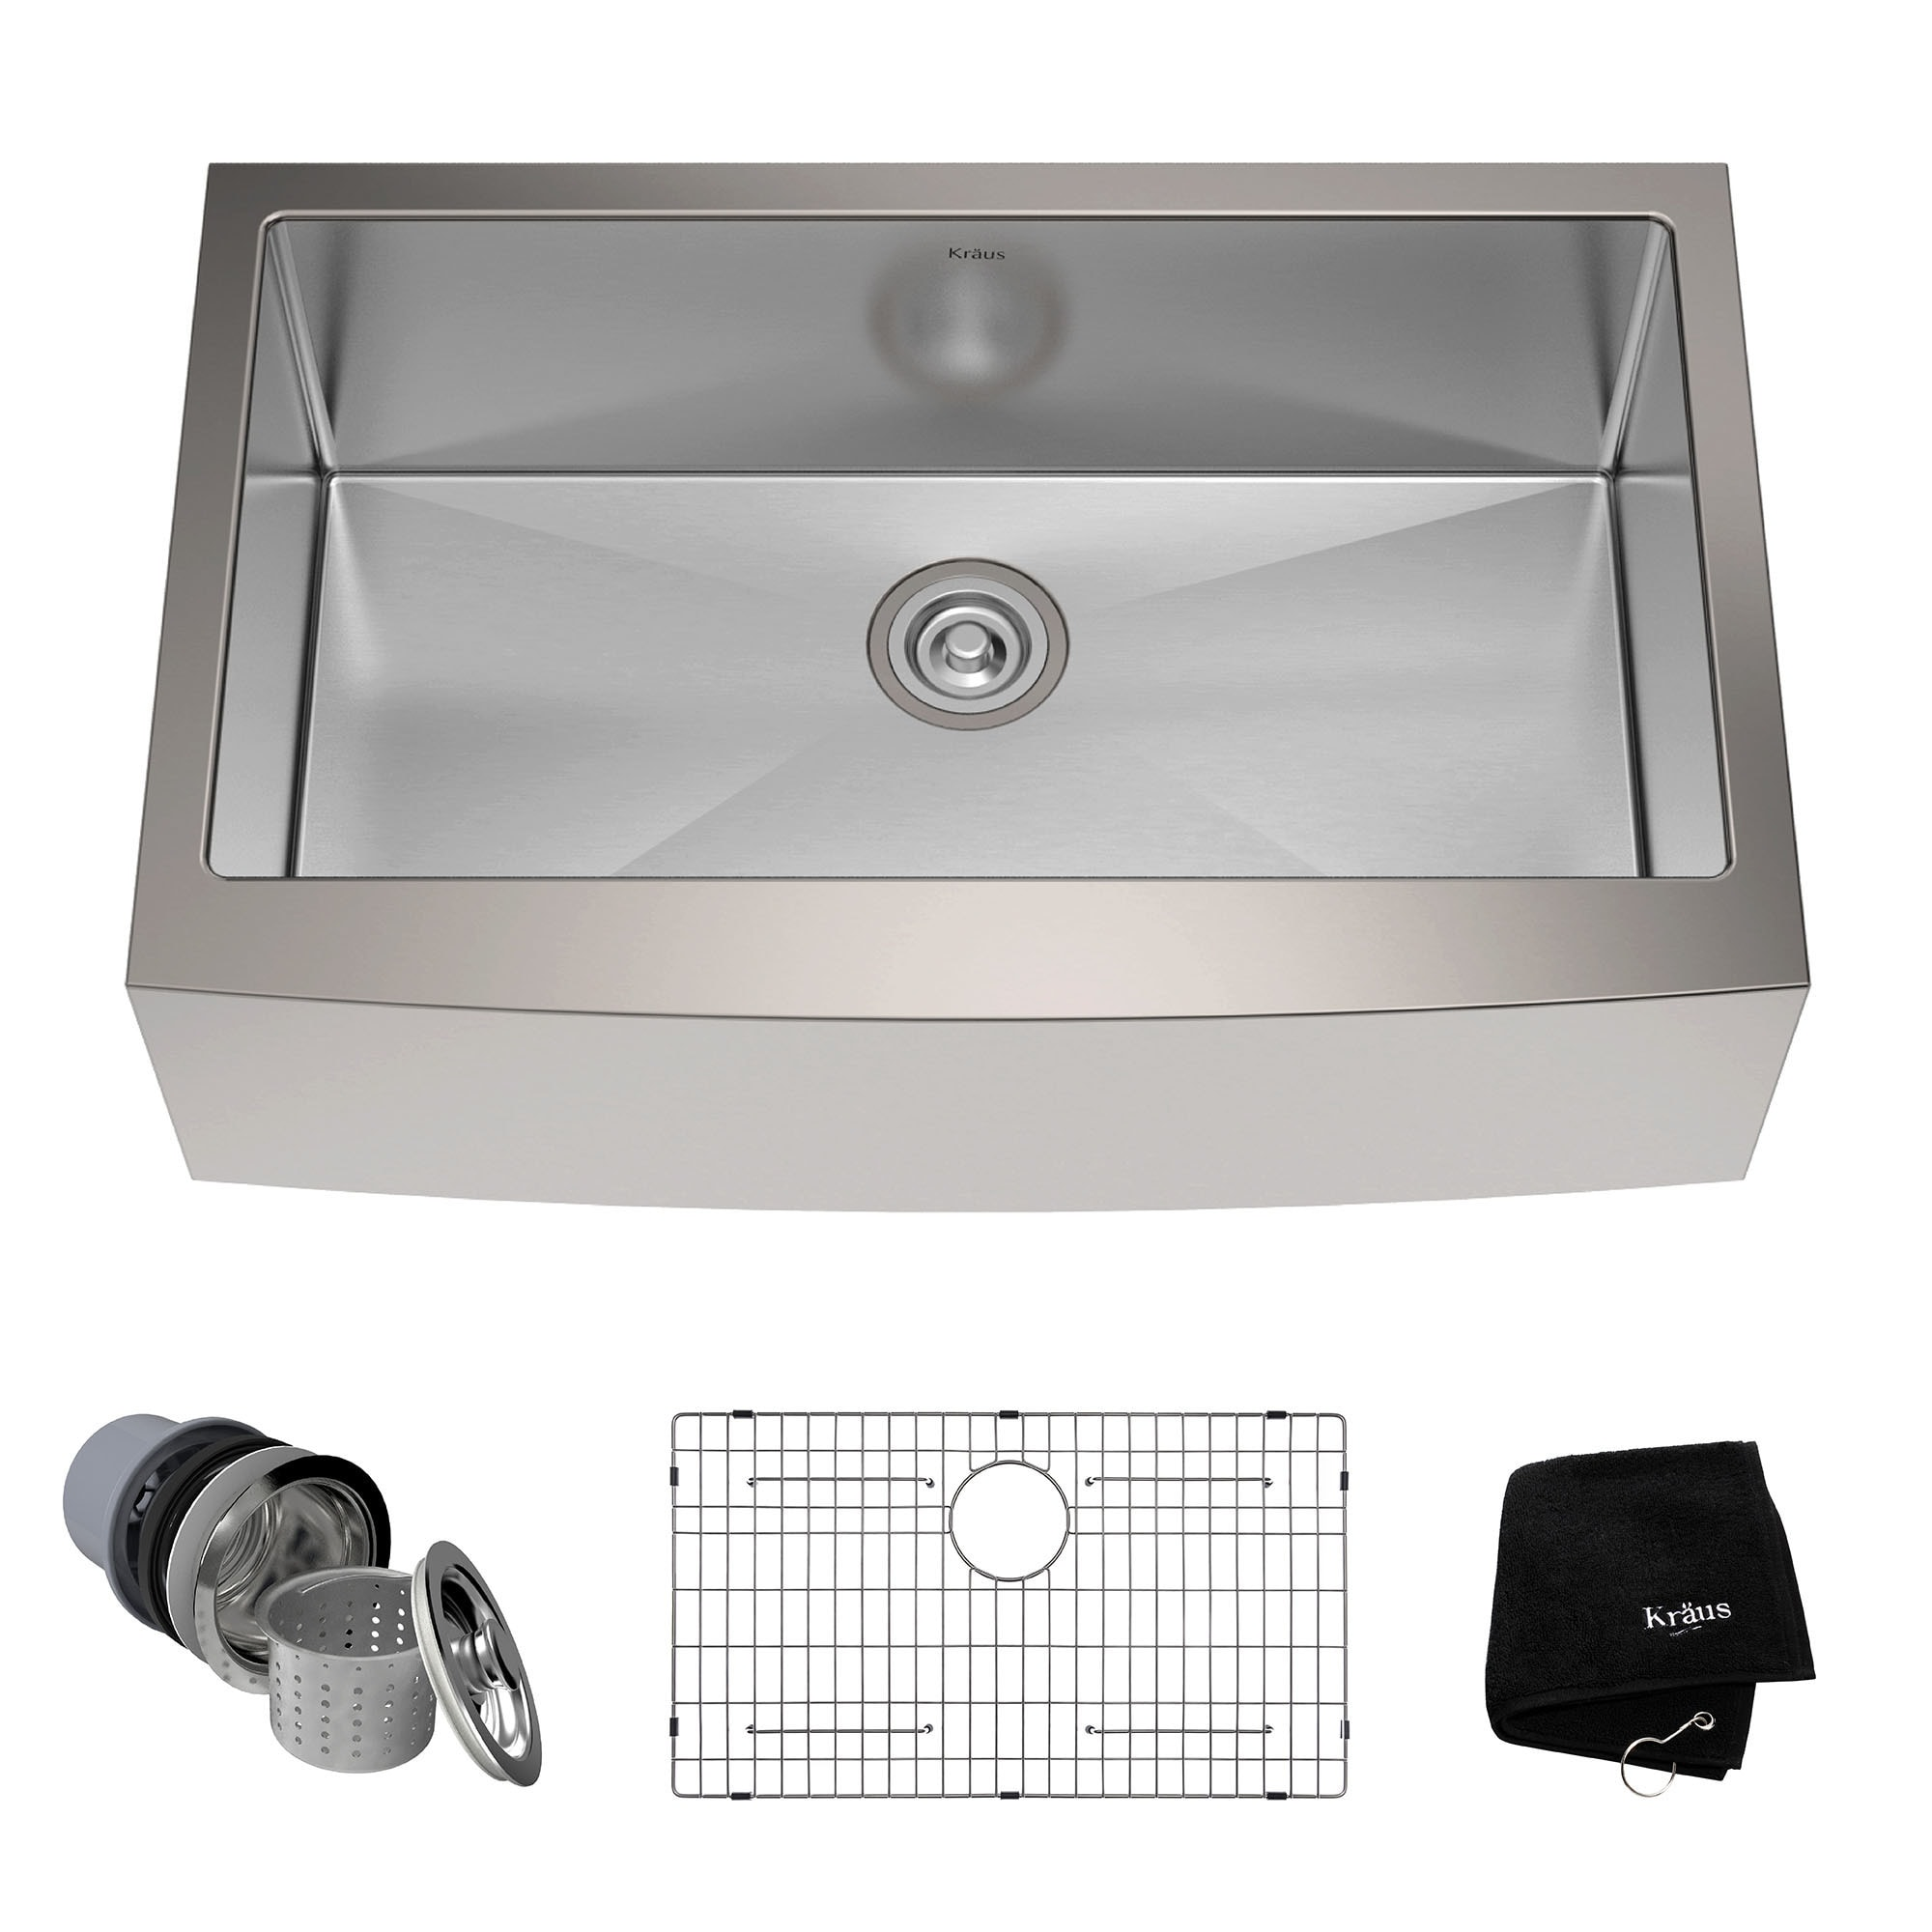 Bon KRAUS 33 Inch Farmhouse Single Bowl Stainless Steel Kitchen Sink With  NoiseDefend Soundproofing   Free Shipping Today   Overstock   12264207